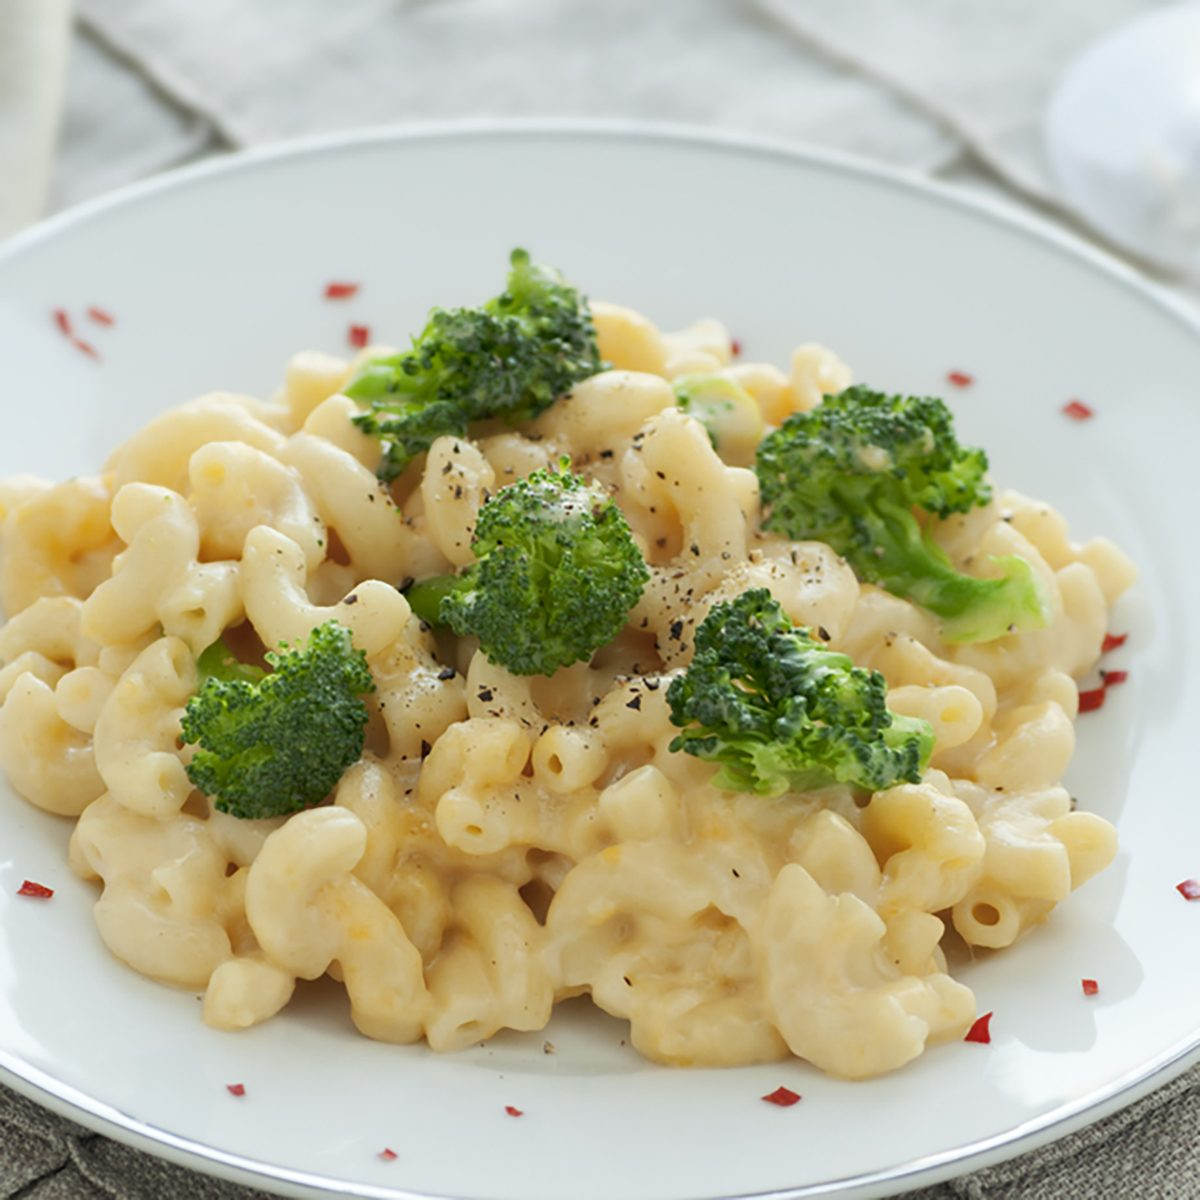 White plate of fresh homemade macaroni and cheese with broccoli and red pepper